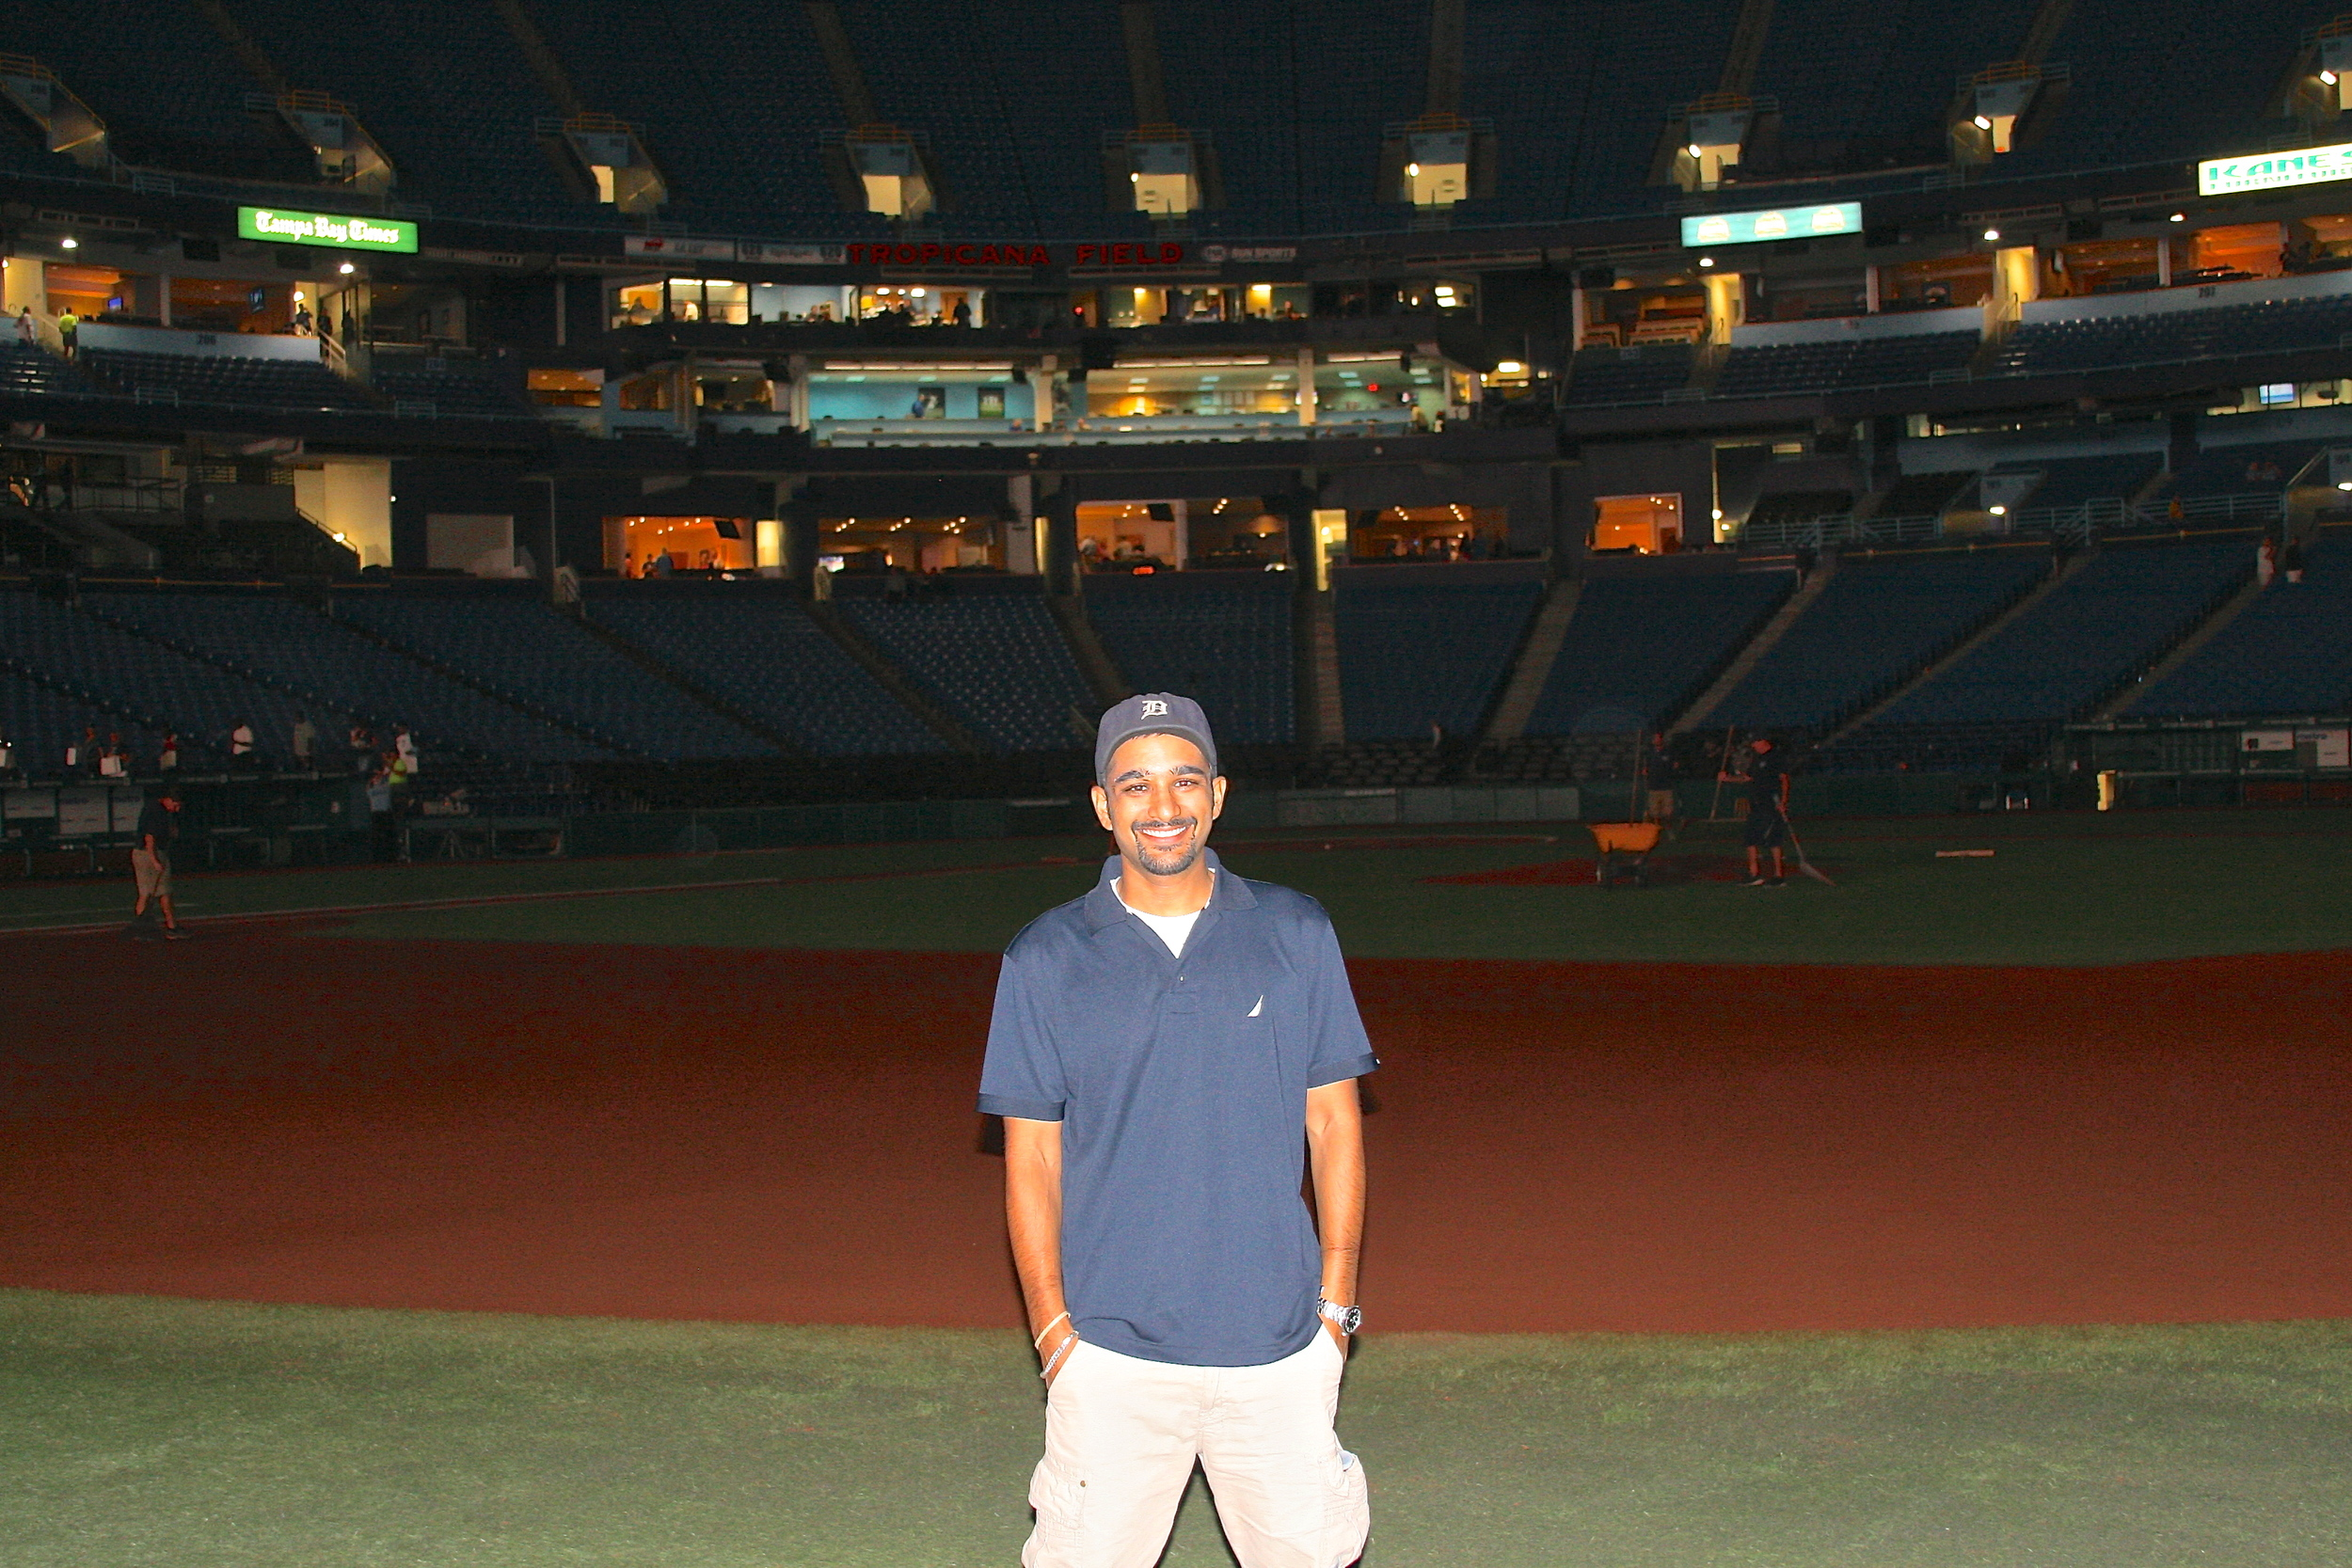 Me on the field